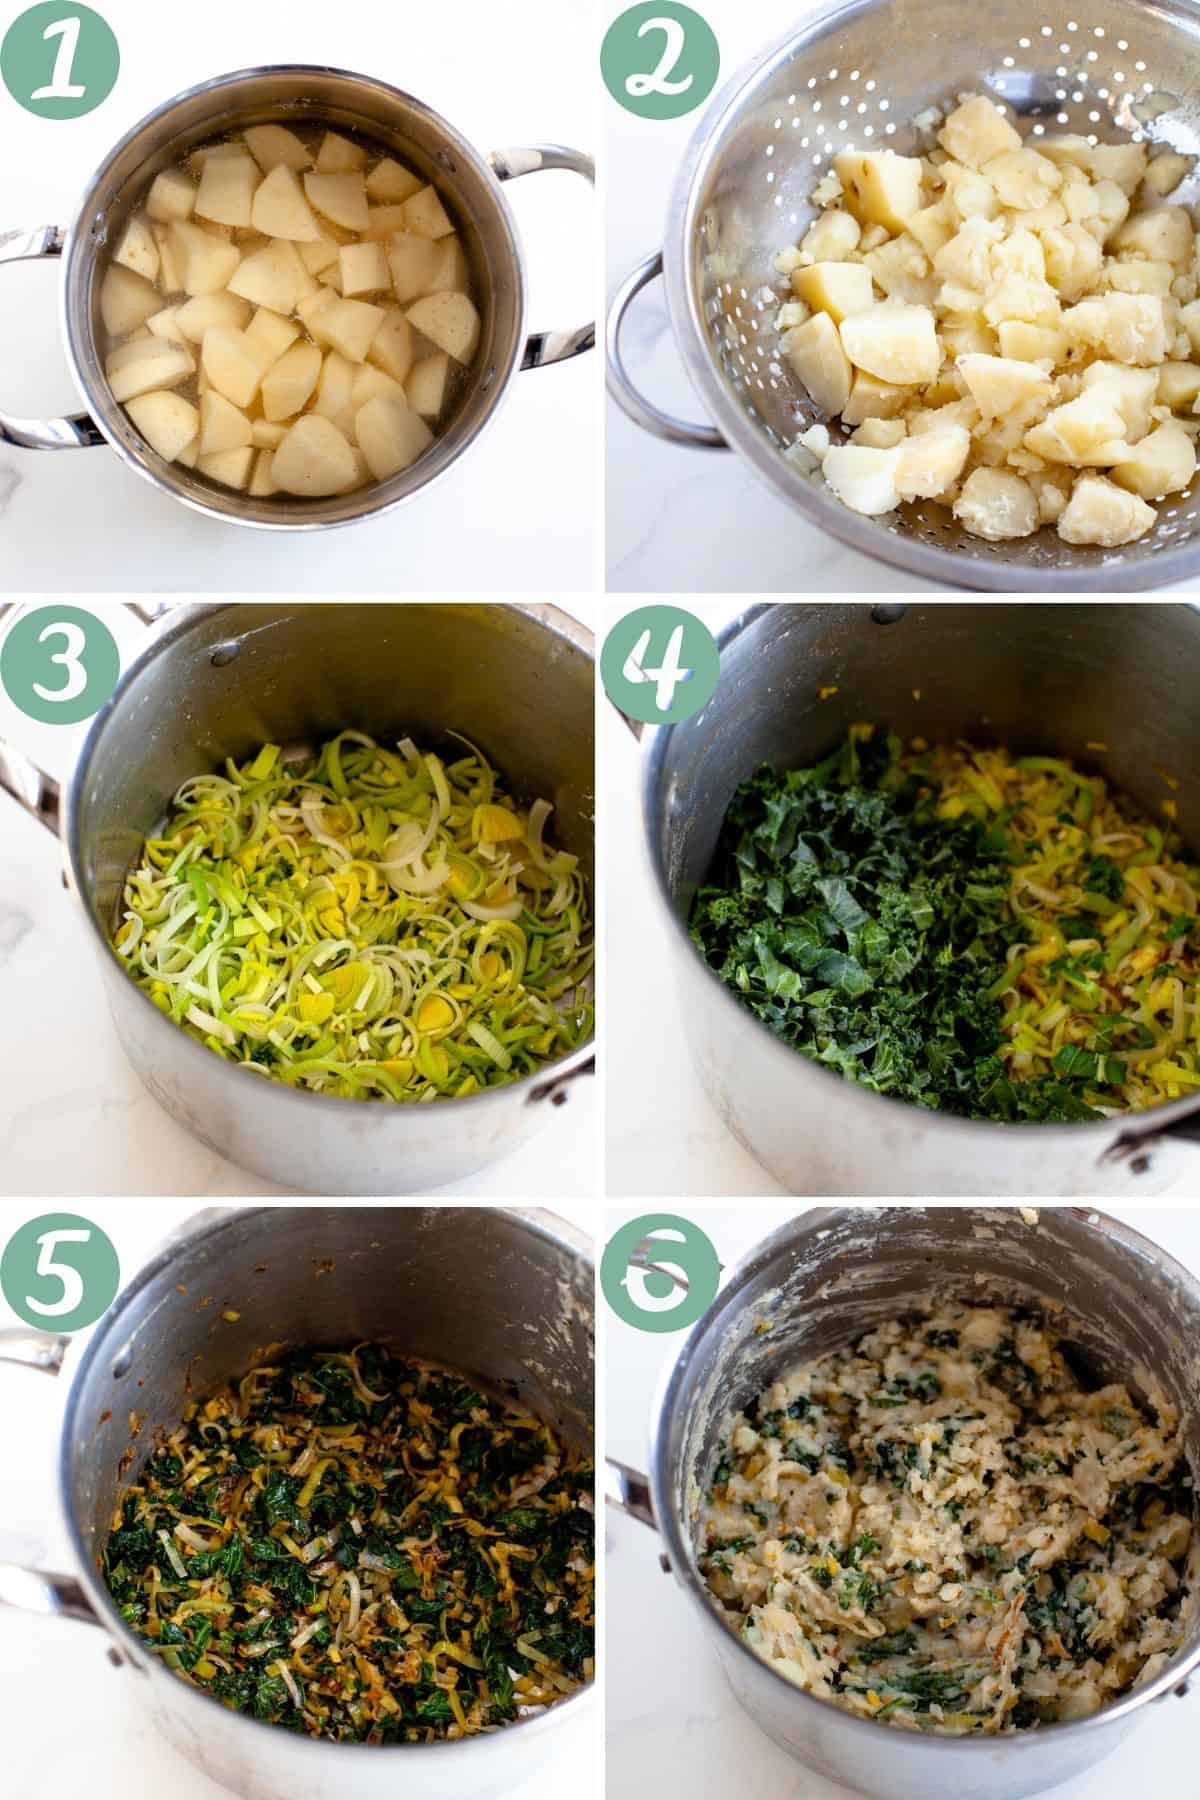 step by step instructions for making vegan colcannon in a pot with potatoes, leek and kale